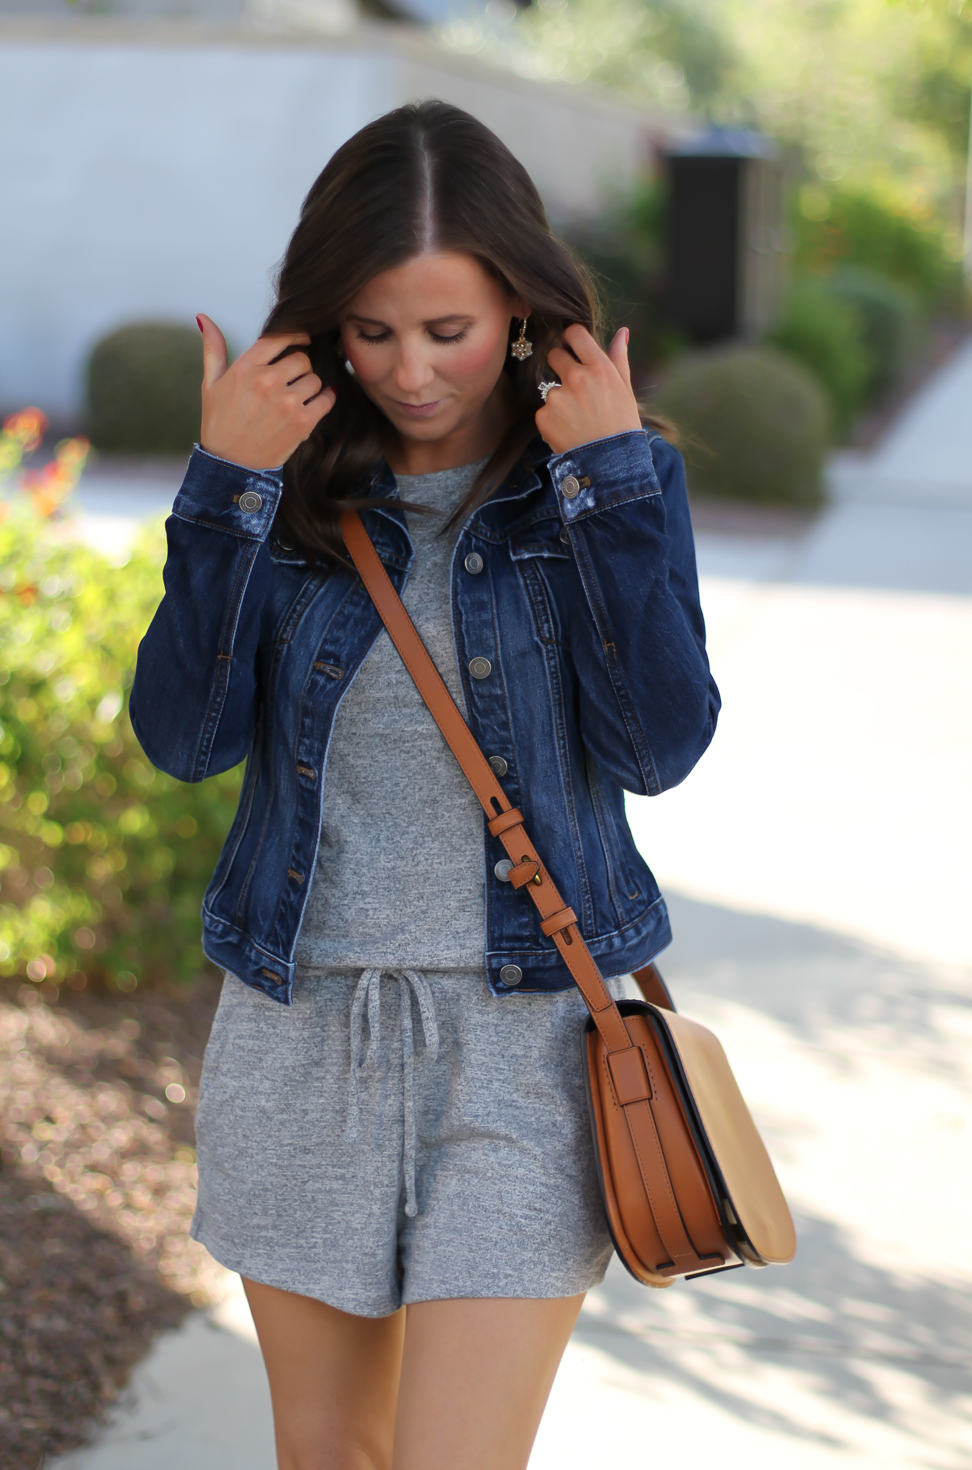 Grey Knit Denim Romper, Denim Jacket, Suede Wedge Sandals, Tan Leather Saddle Bag, Gap, Banana Republic, Chloe, Tory Burch 10